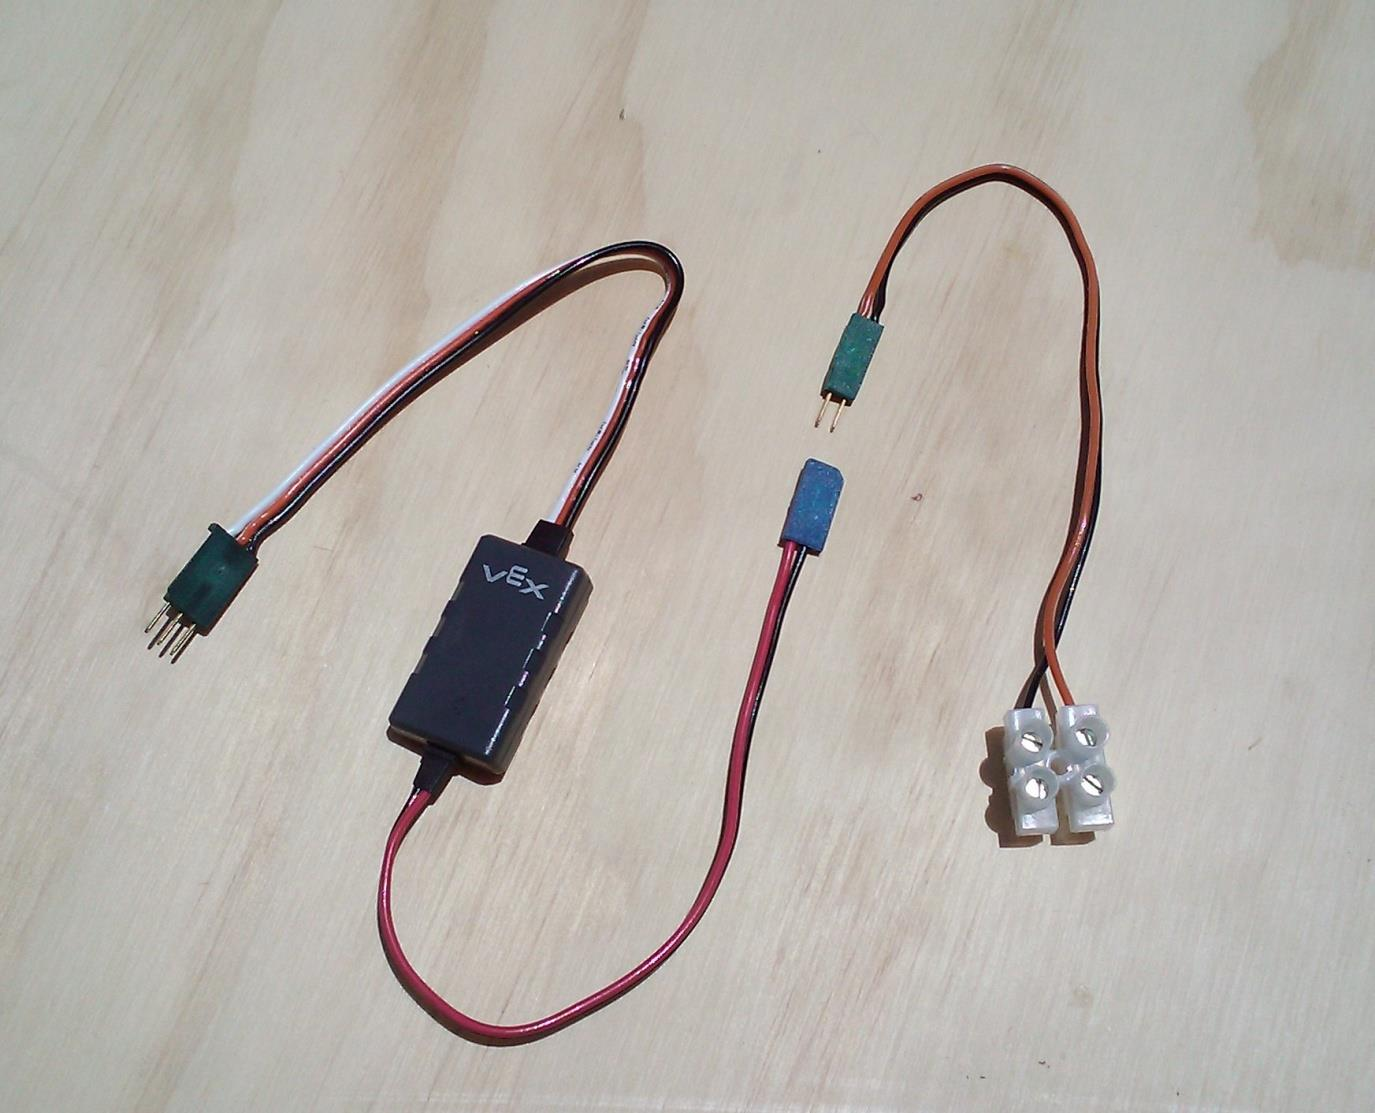 3-Wire Motor Connection (1) External Motor Controller Suggest using a 4 wire tie or heat shrink tubing